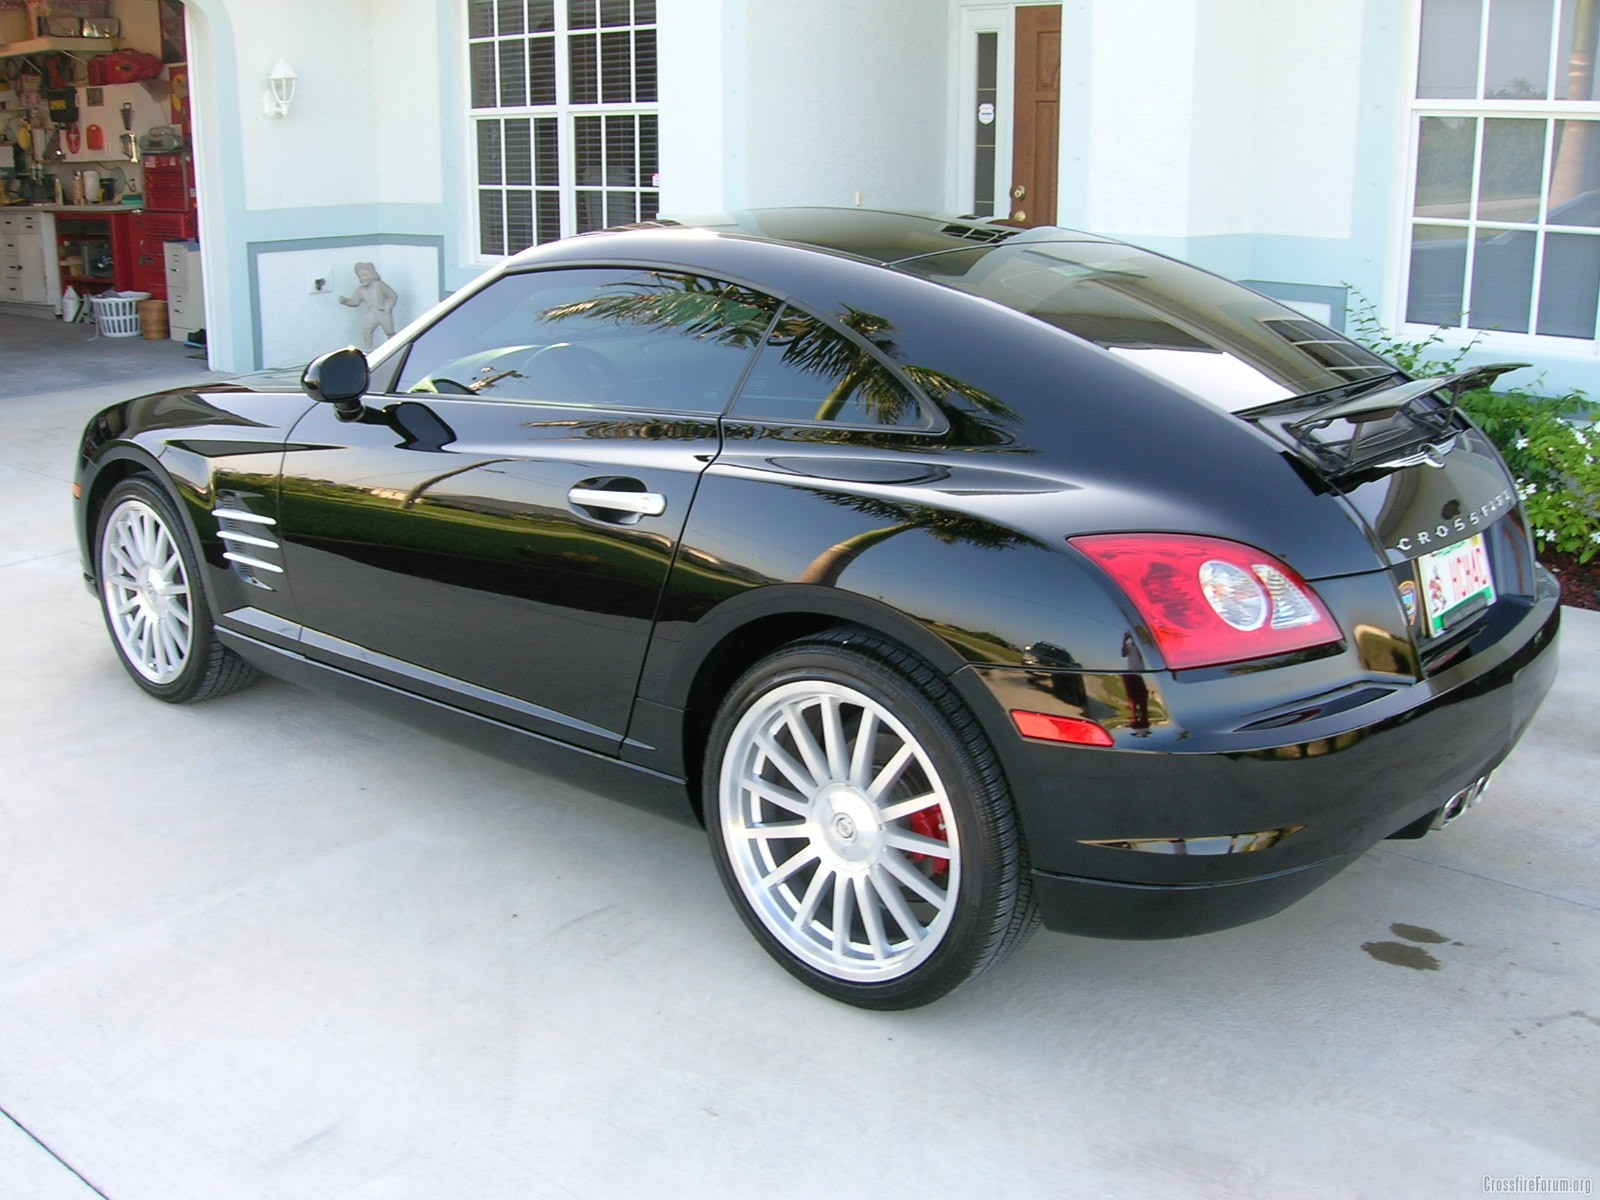 black must more crossfire original glass top heated chrysler have views first german